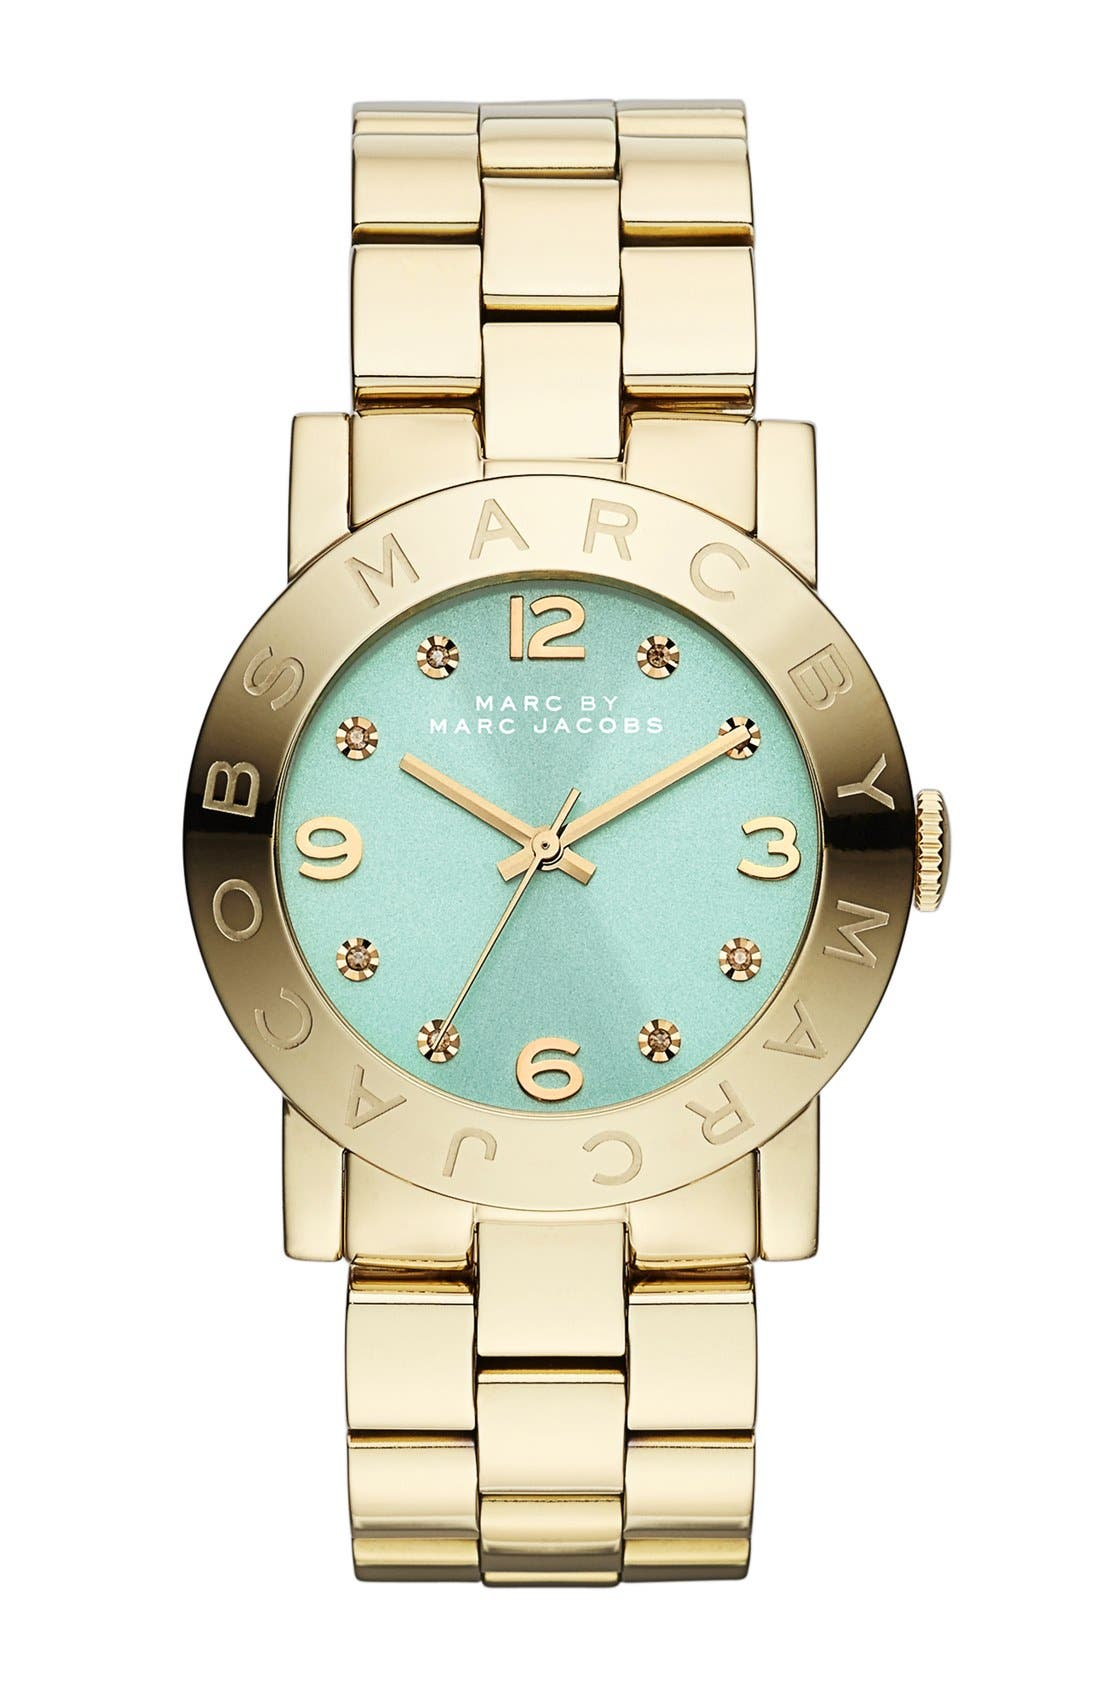 Main Image - MARC JACOBS 'Amy' Bracelet Watch, 36mm